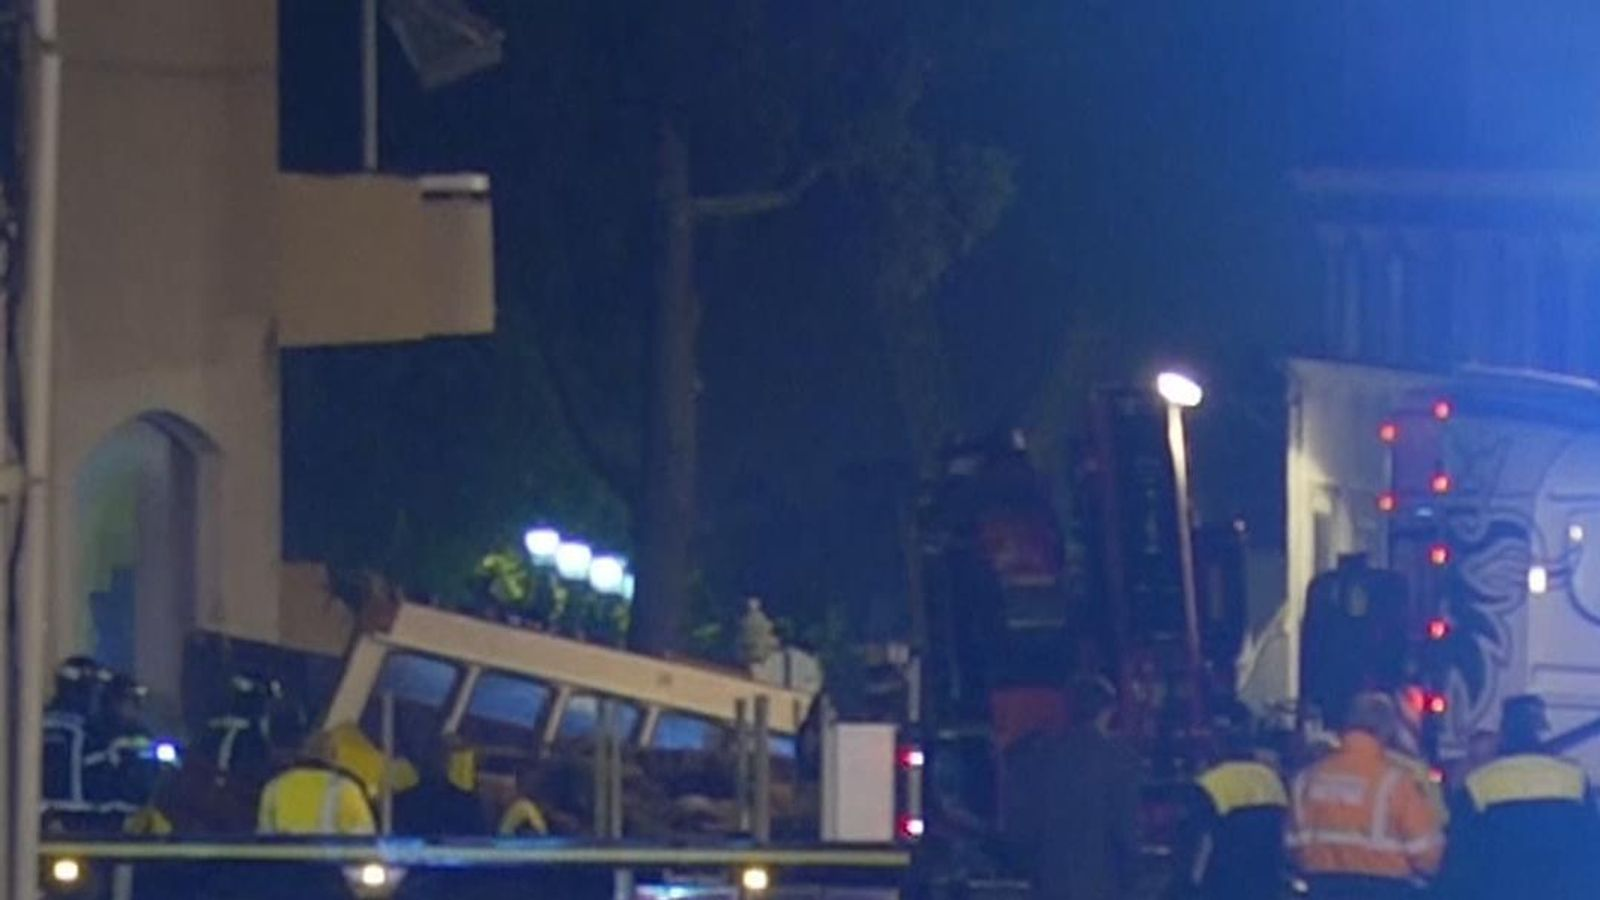 Tram derails and overturns injuring 28 in Portugal